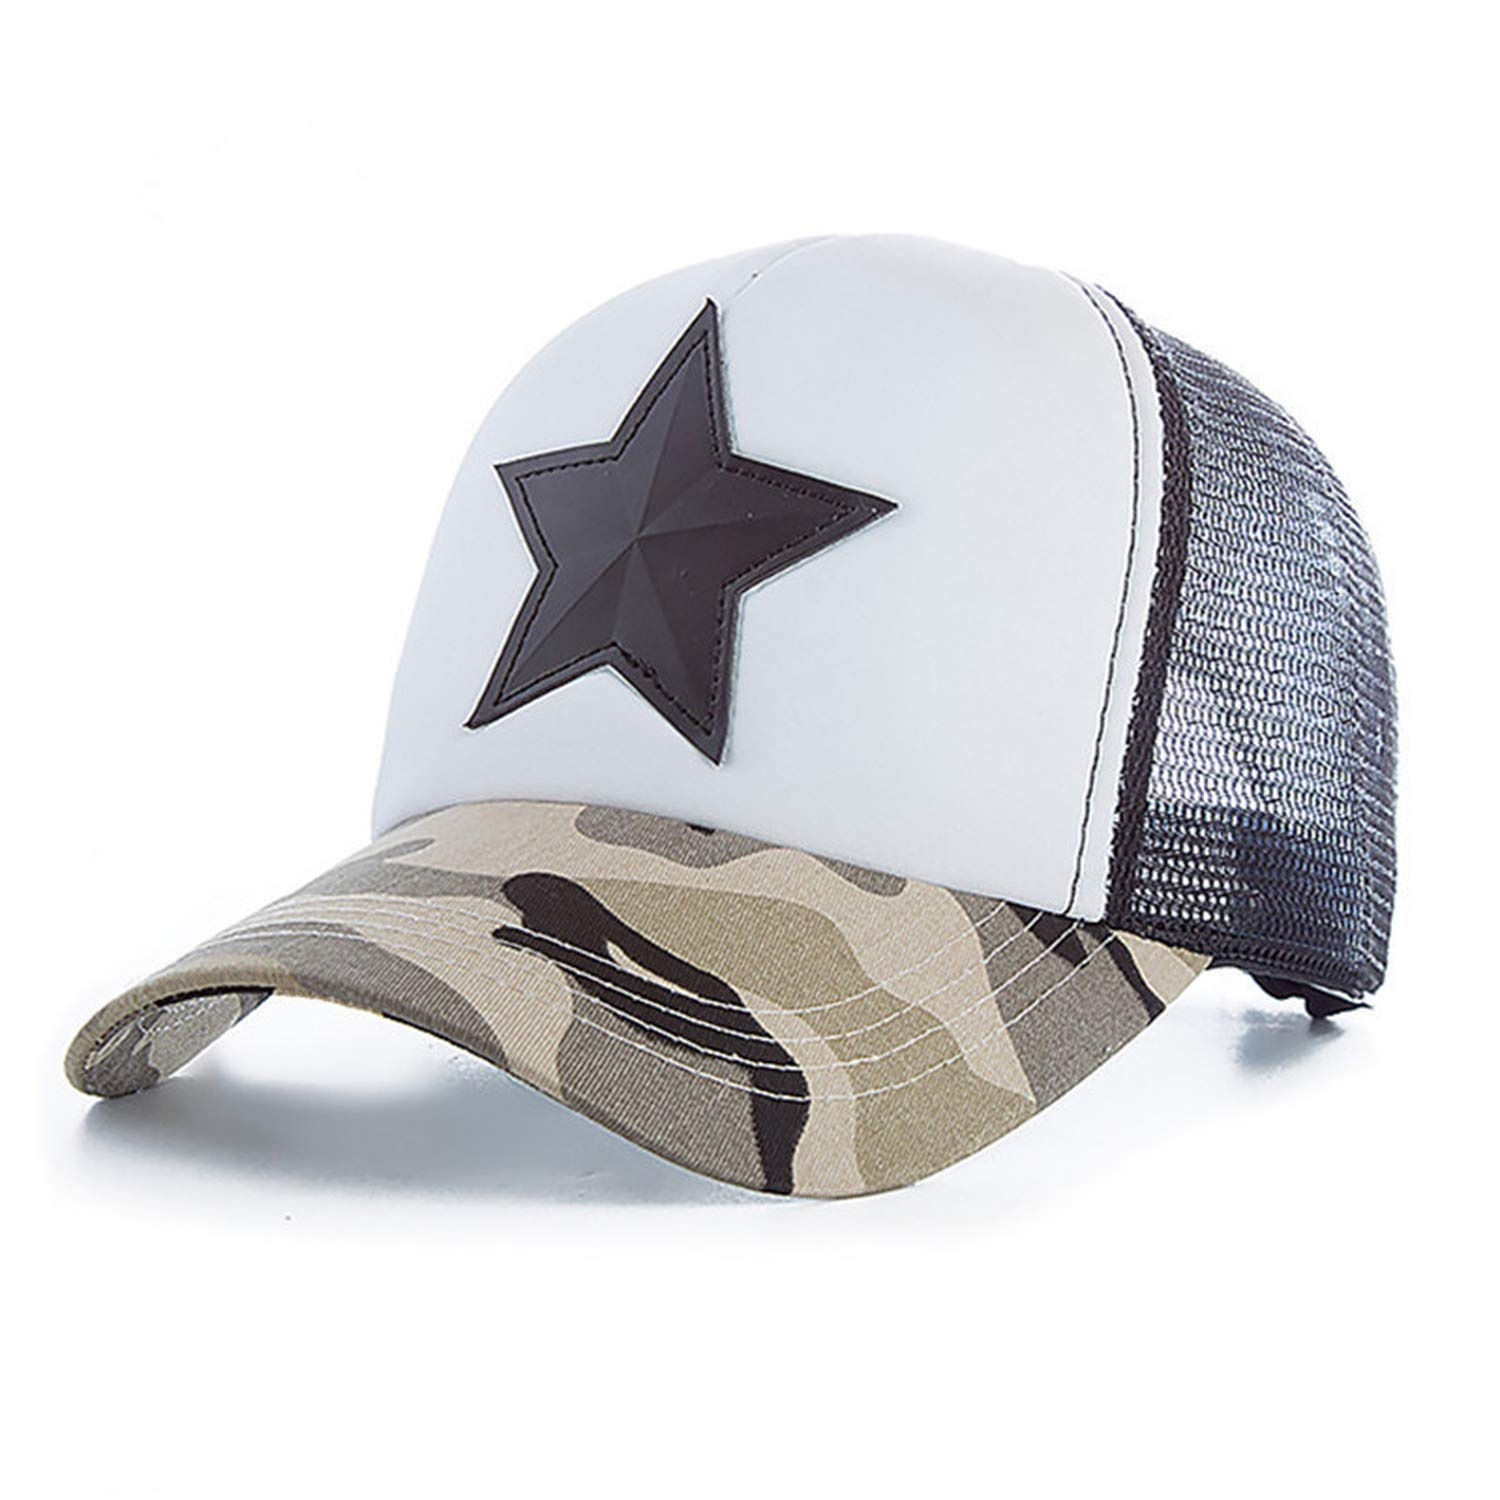 Eric Carl New 3D Five-Pointed Star Embroidery Mesh Baseball Cap Fashion Summer Camouflage Hat Cap Leisure Cap